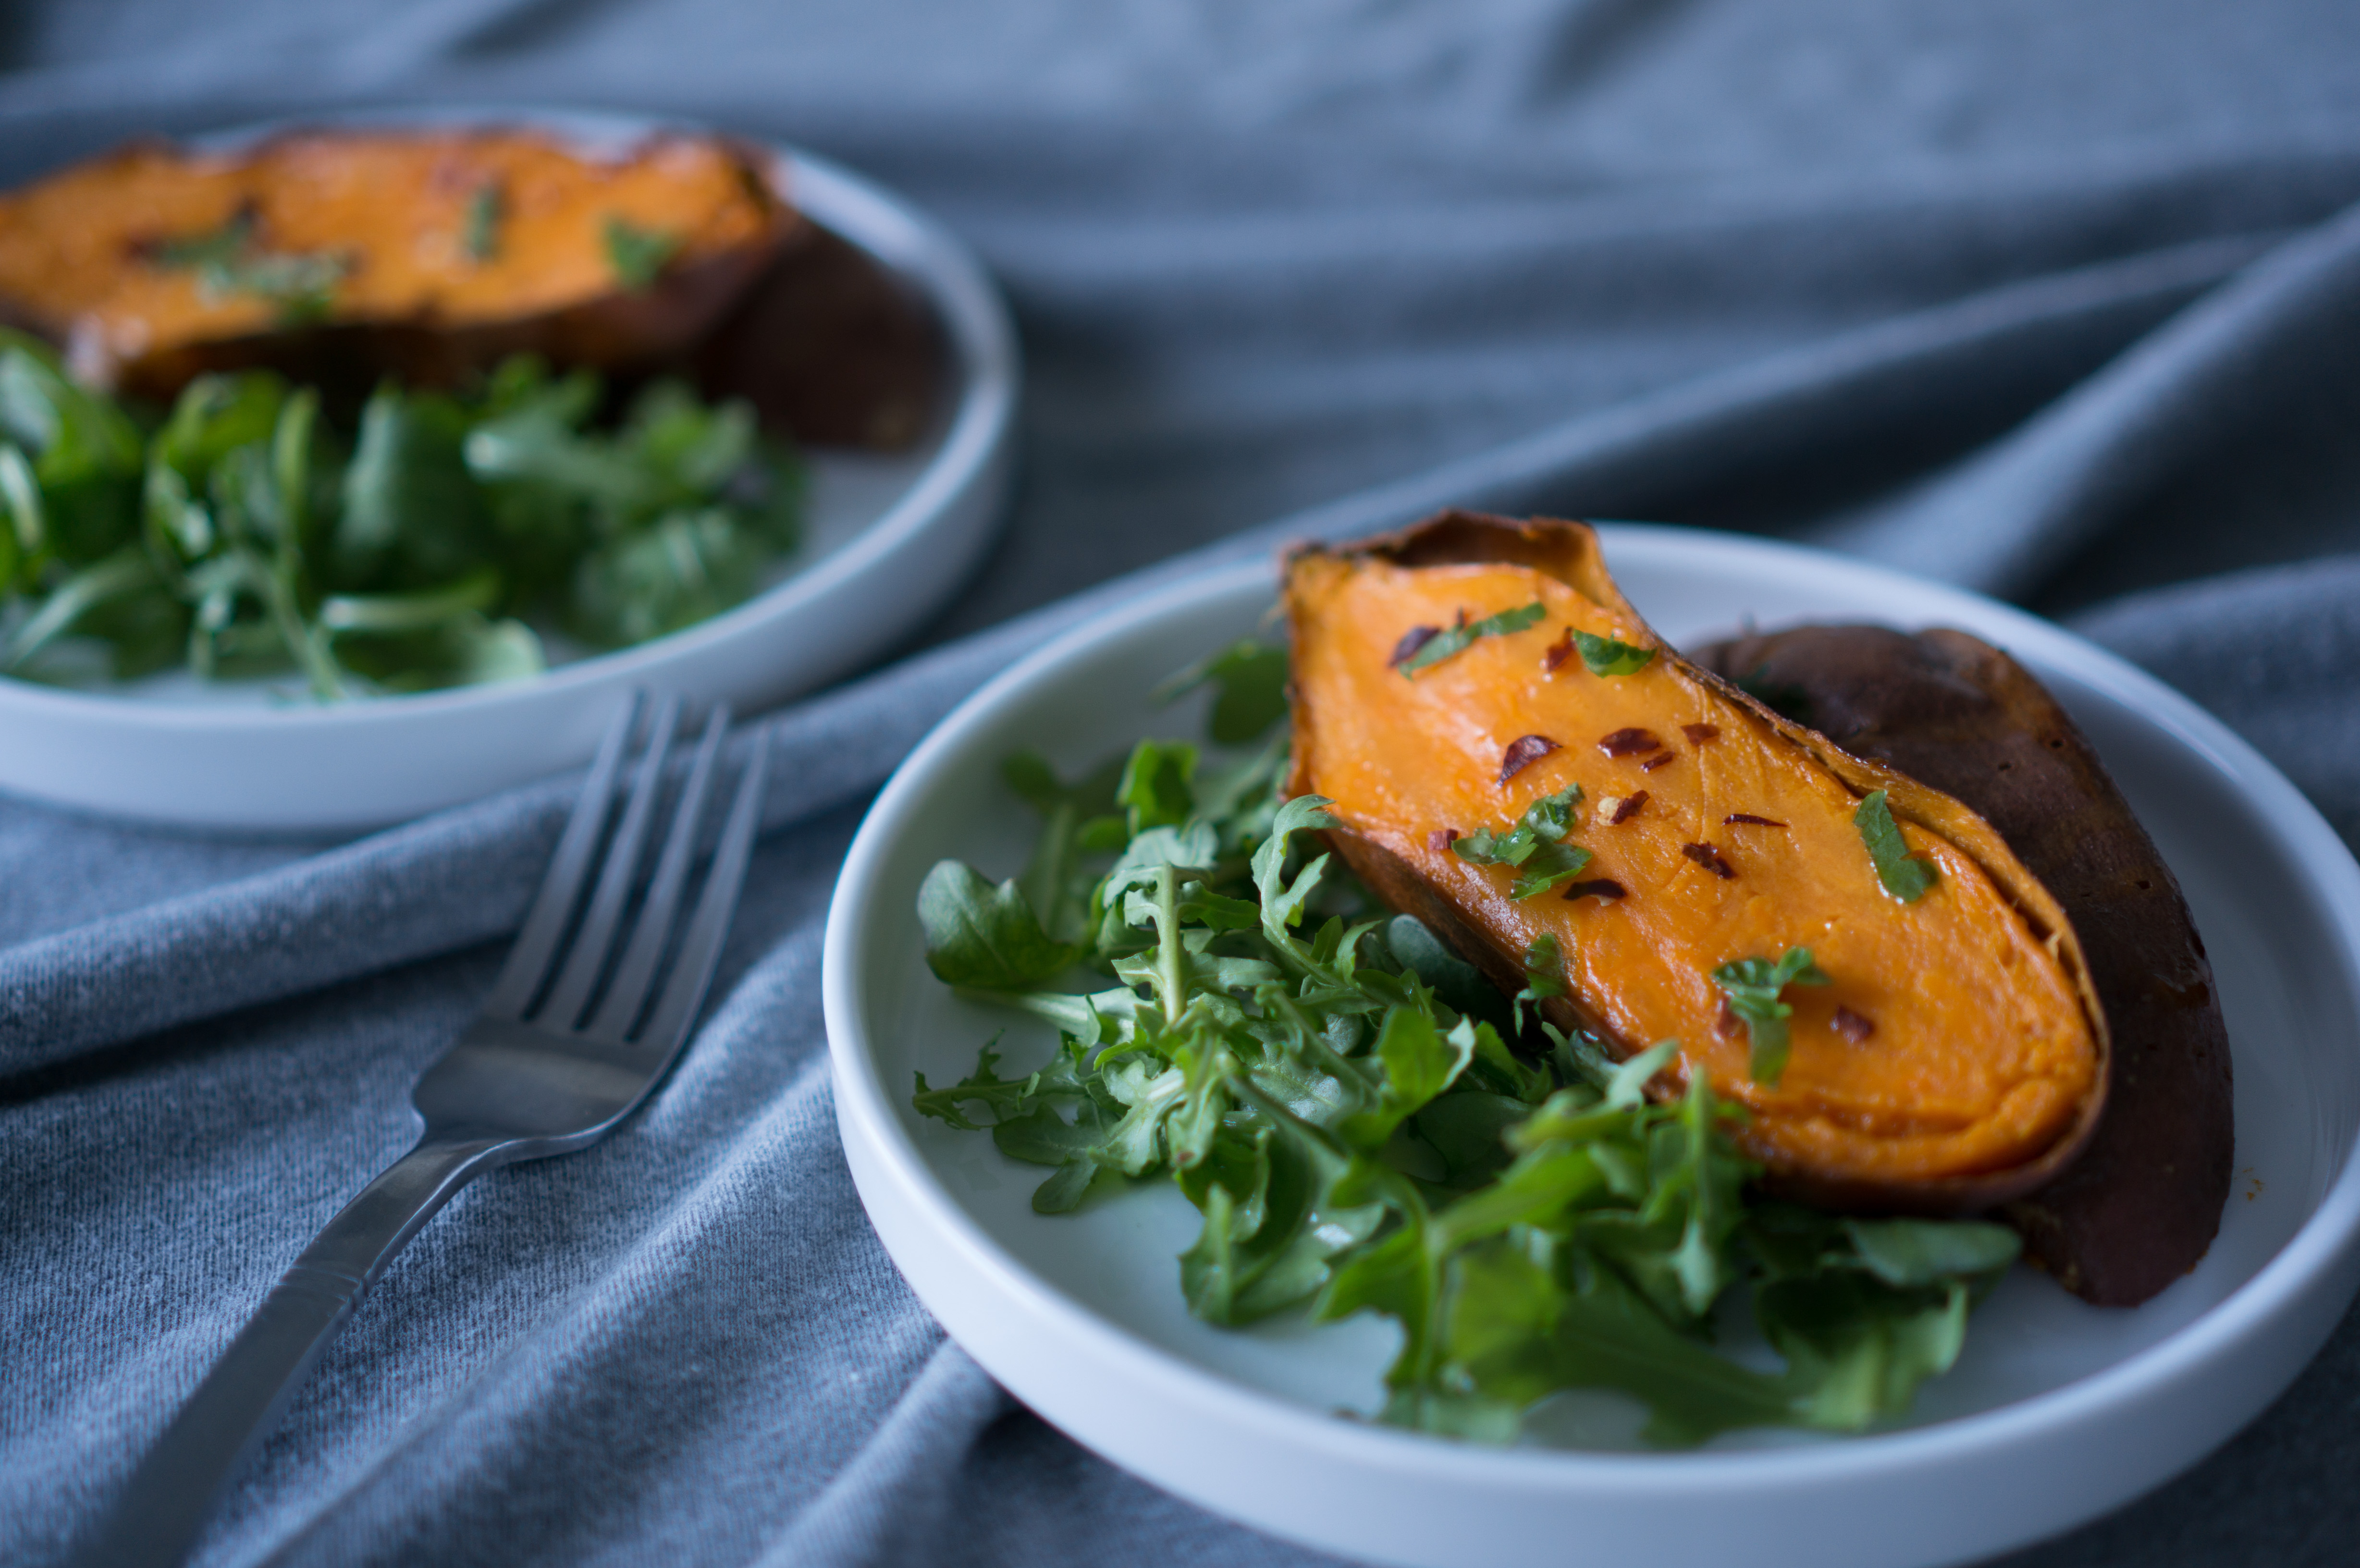 Slow Roasted Sticky Sweet Potatoes - We love this simple, vegan recipe for Slow Roasted Sticky Sweet Potatoes! Just 2 ingredients (olive oil + sweet potatoes) & a hot oven are all you need for perfectly caramelized sweet potatoes every time | freeyourfork.com